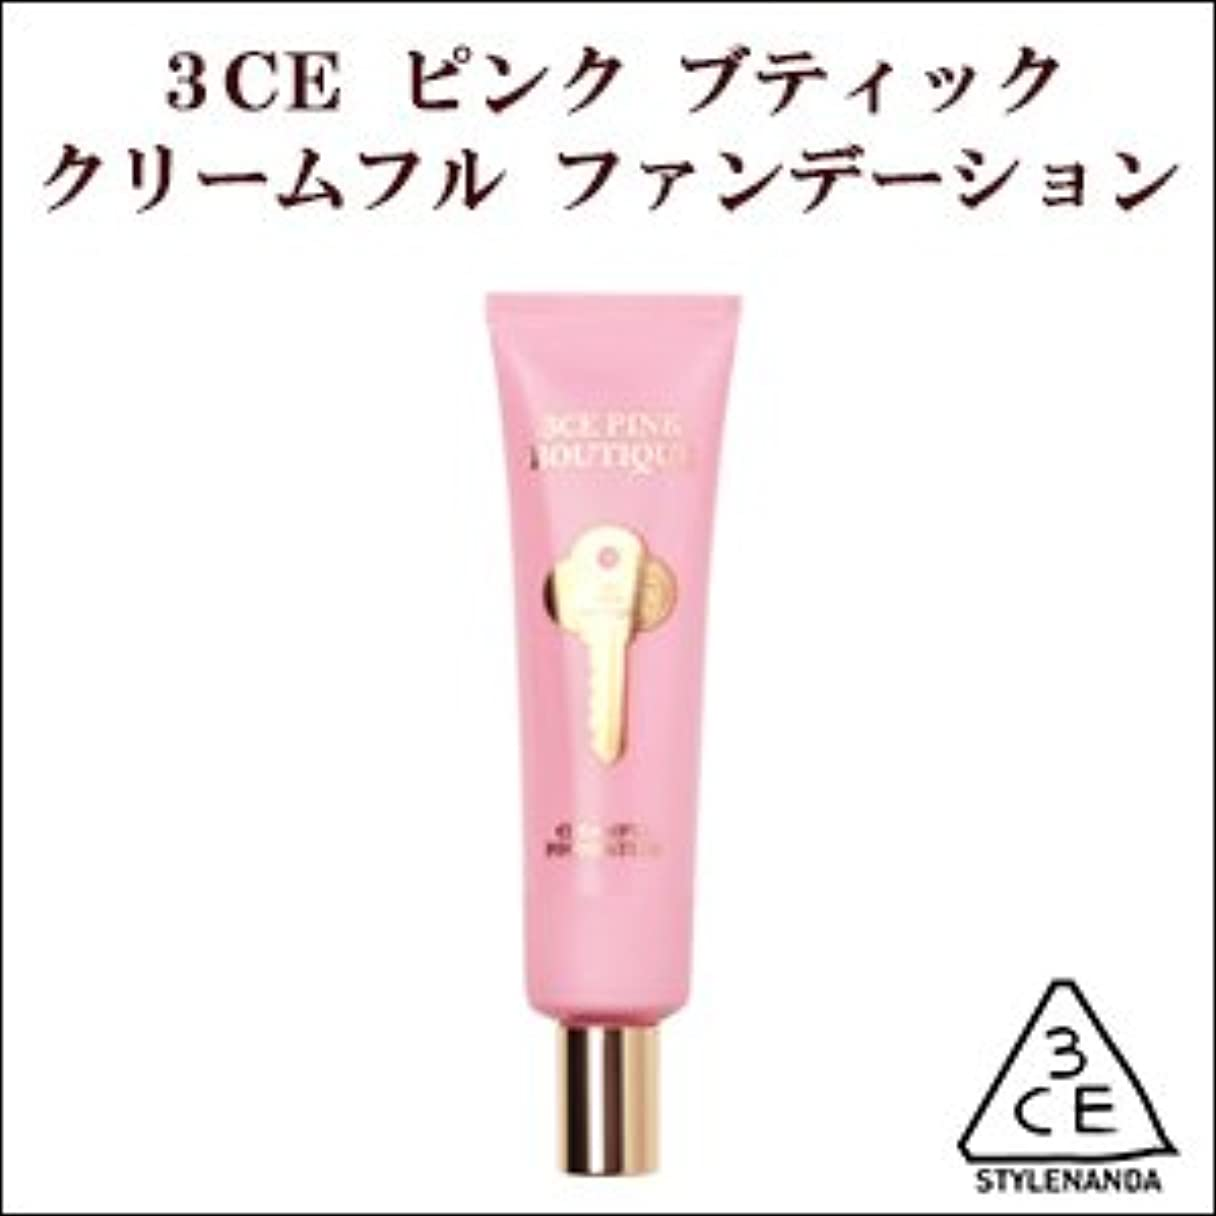 『3CE?STYLENANDA』ピンク ブティック クリームフル ファンデーション【韓国コスメ】PINK BOUTIQUE CREAMFUL FOUNDATION